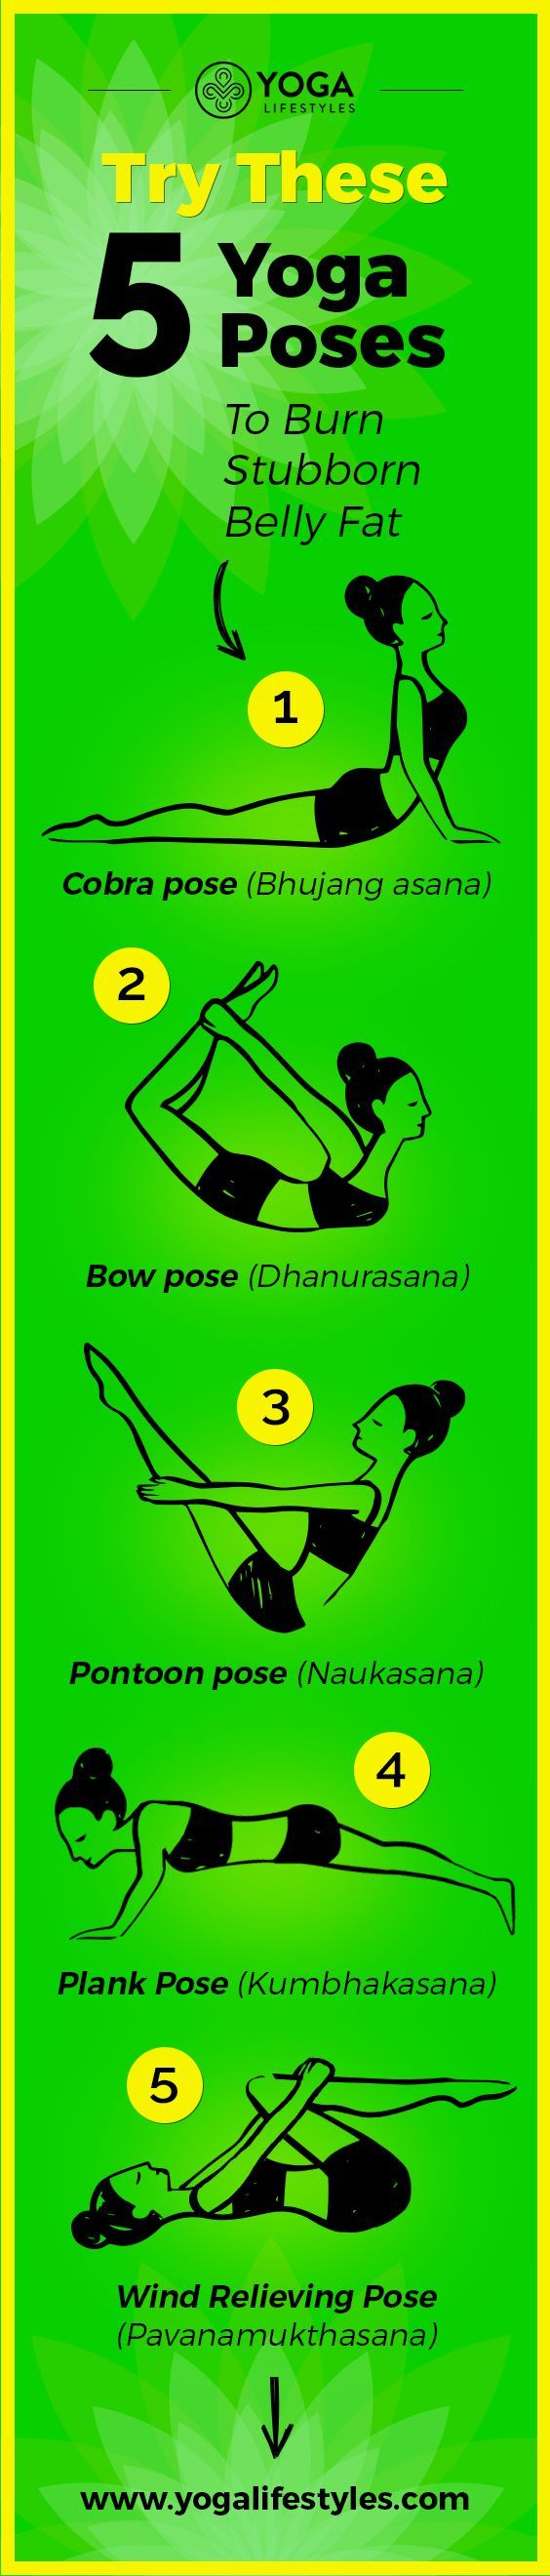 Try These 5 Yoga Poses To Burn Stubborn Belly Fat Try These 5 Yoga Poses To Burn Stubborn Belly Fat